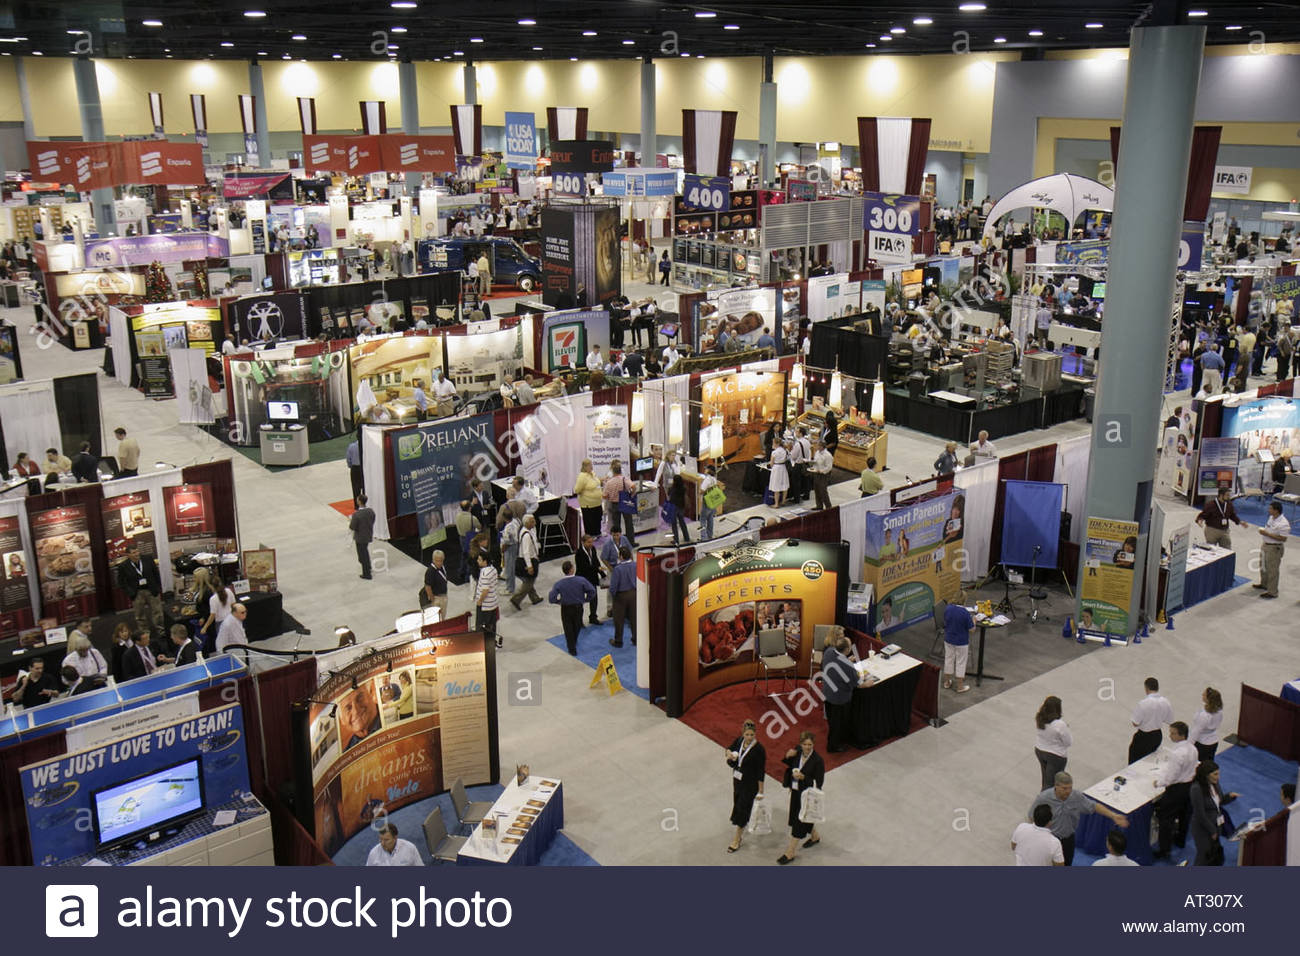 Trade Show Booth Vendors : Franchise expo trade show vendors business booth displays